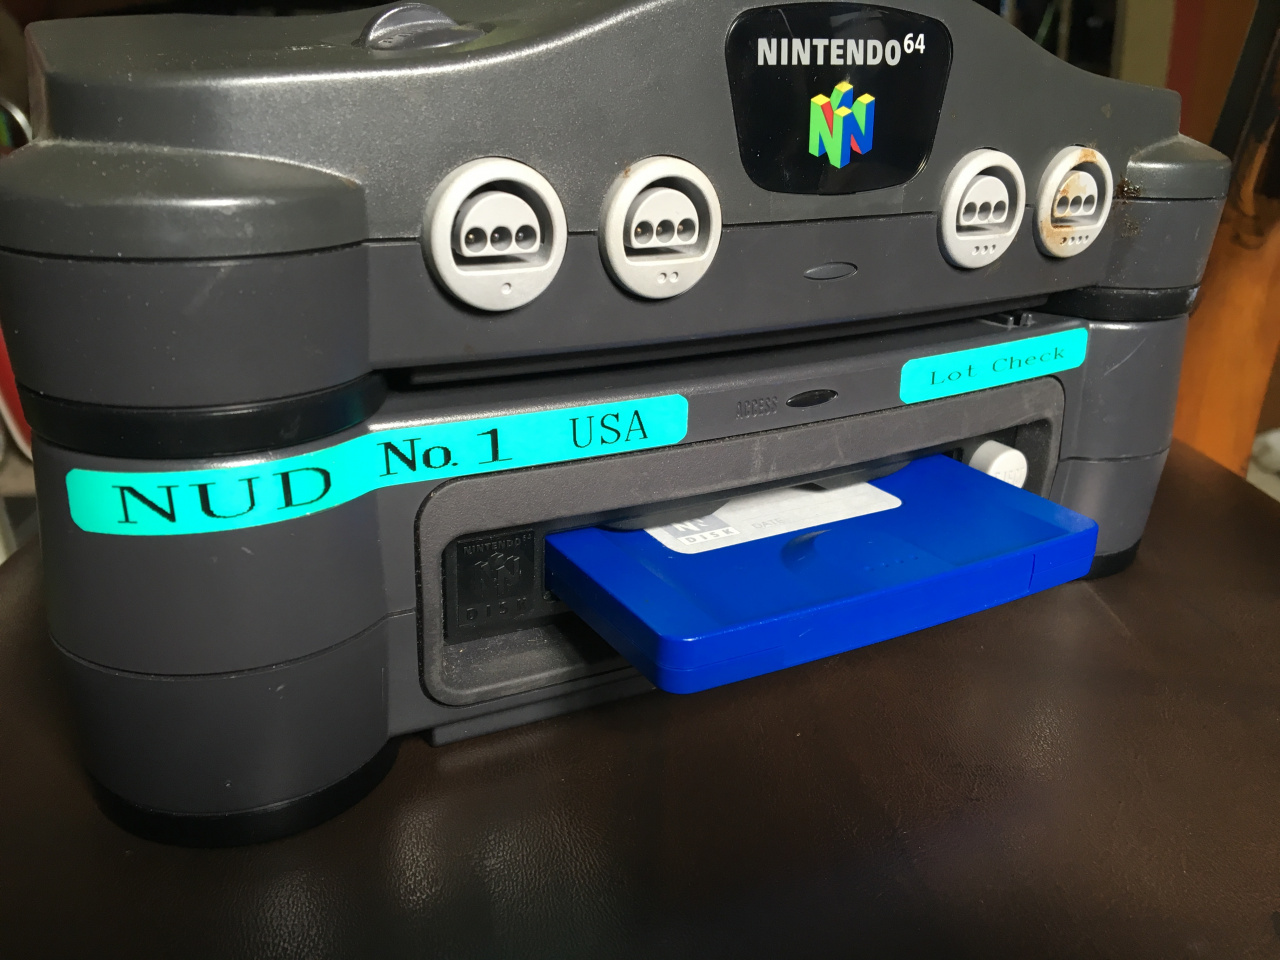 Discovery Of US Nintendo 64DD Unit Prompts Plenty Of Excitement For Retro Collectors Nintendo Life